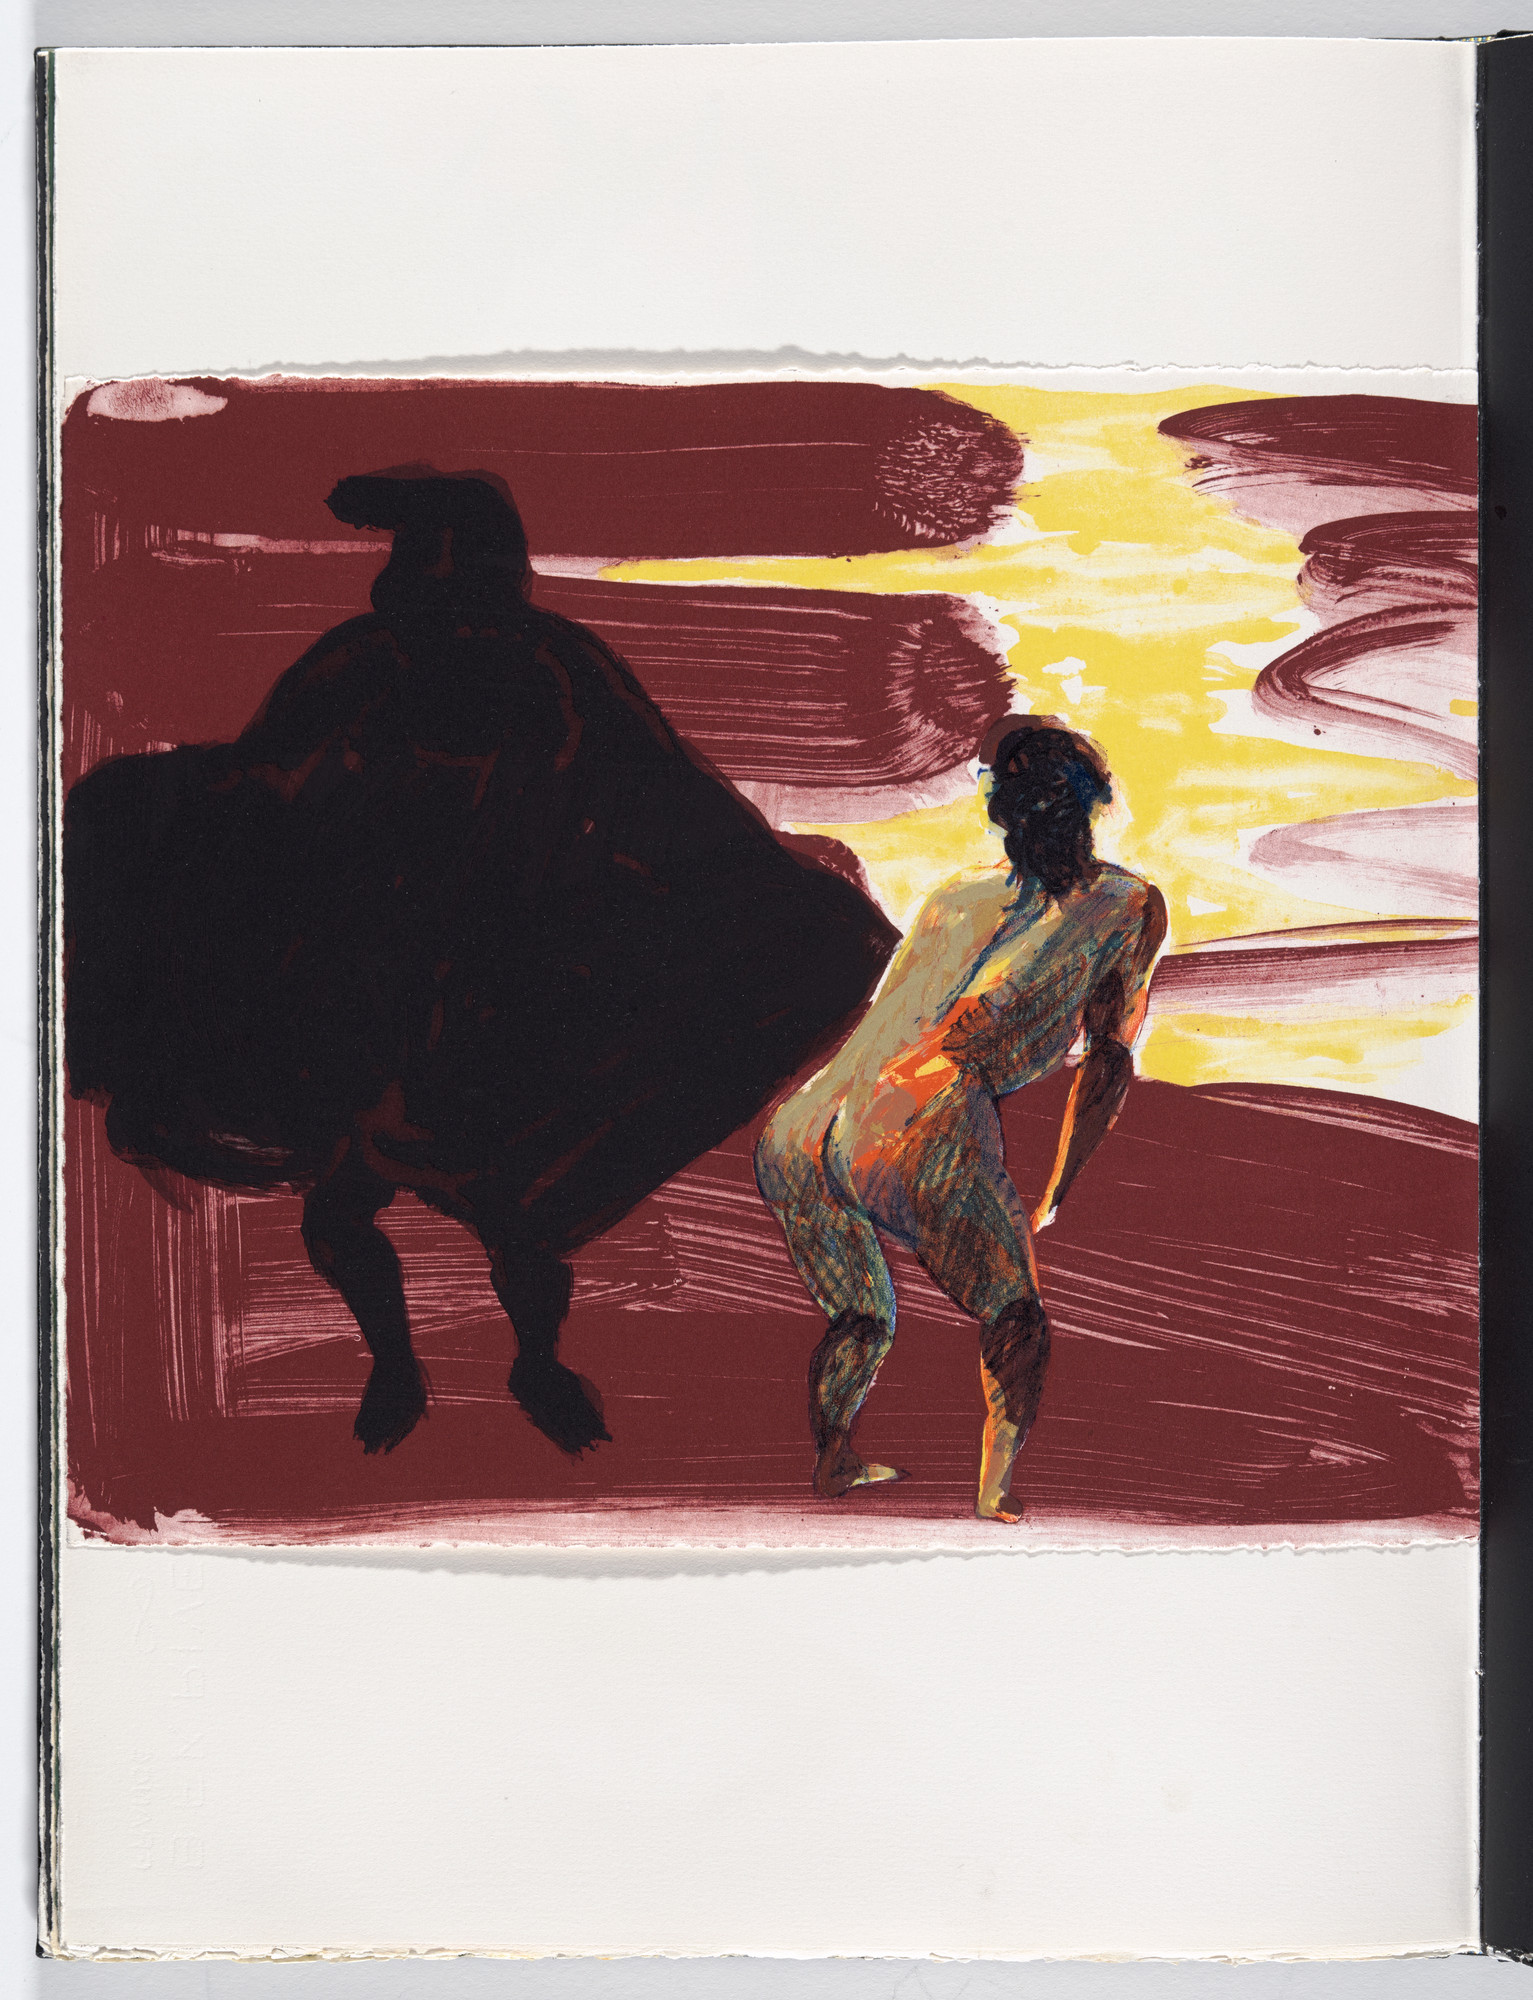 Eric Fischl. Annie, Gwen, Lilly, Pam and Tulip. 1986